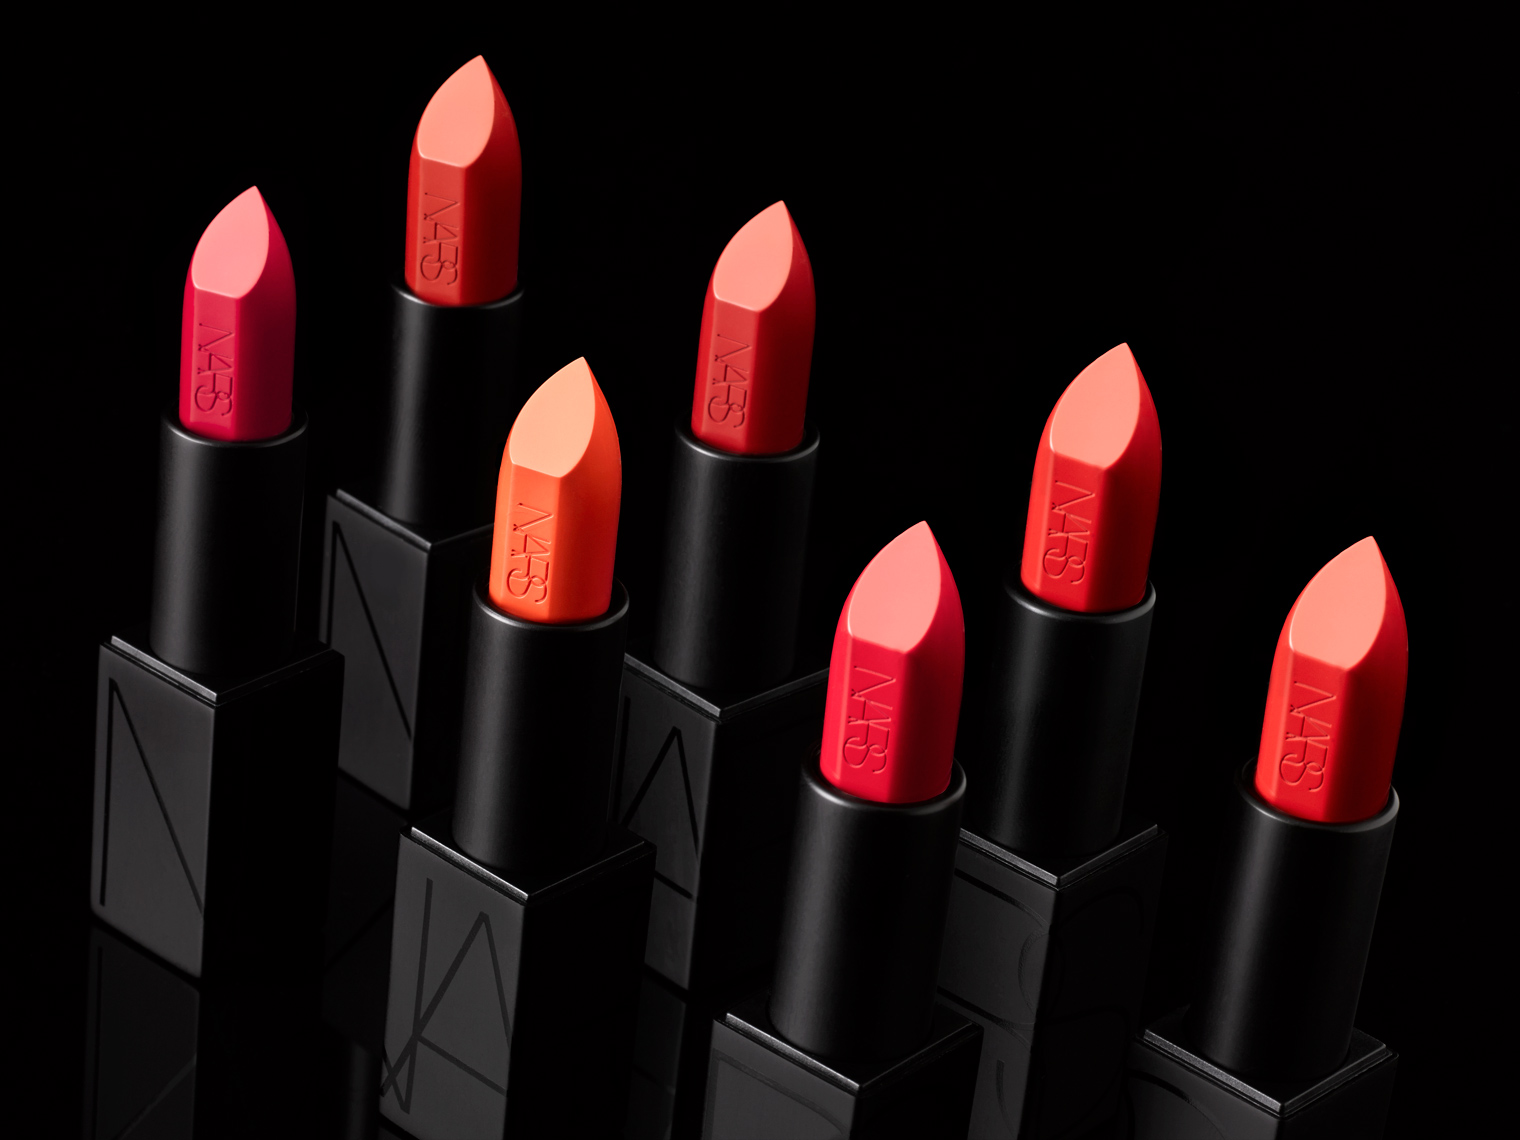 Nars lipsticks - San Francisco product photographer